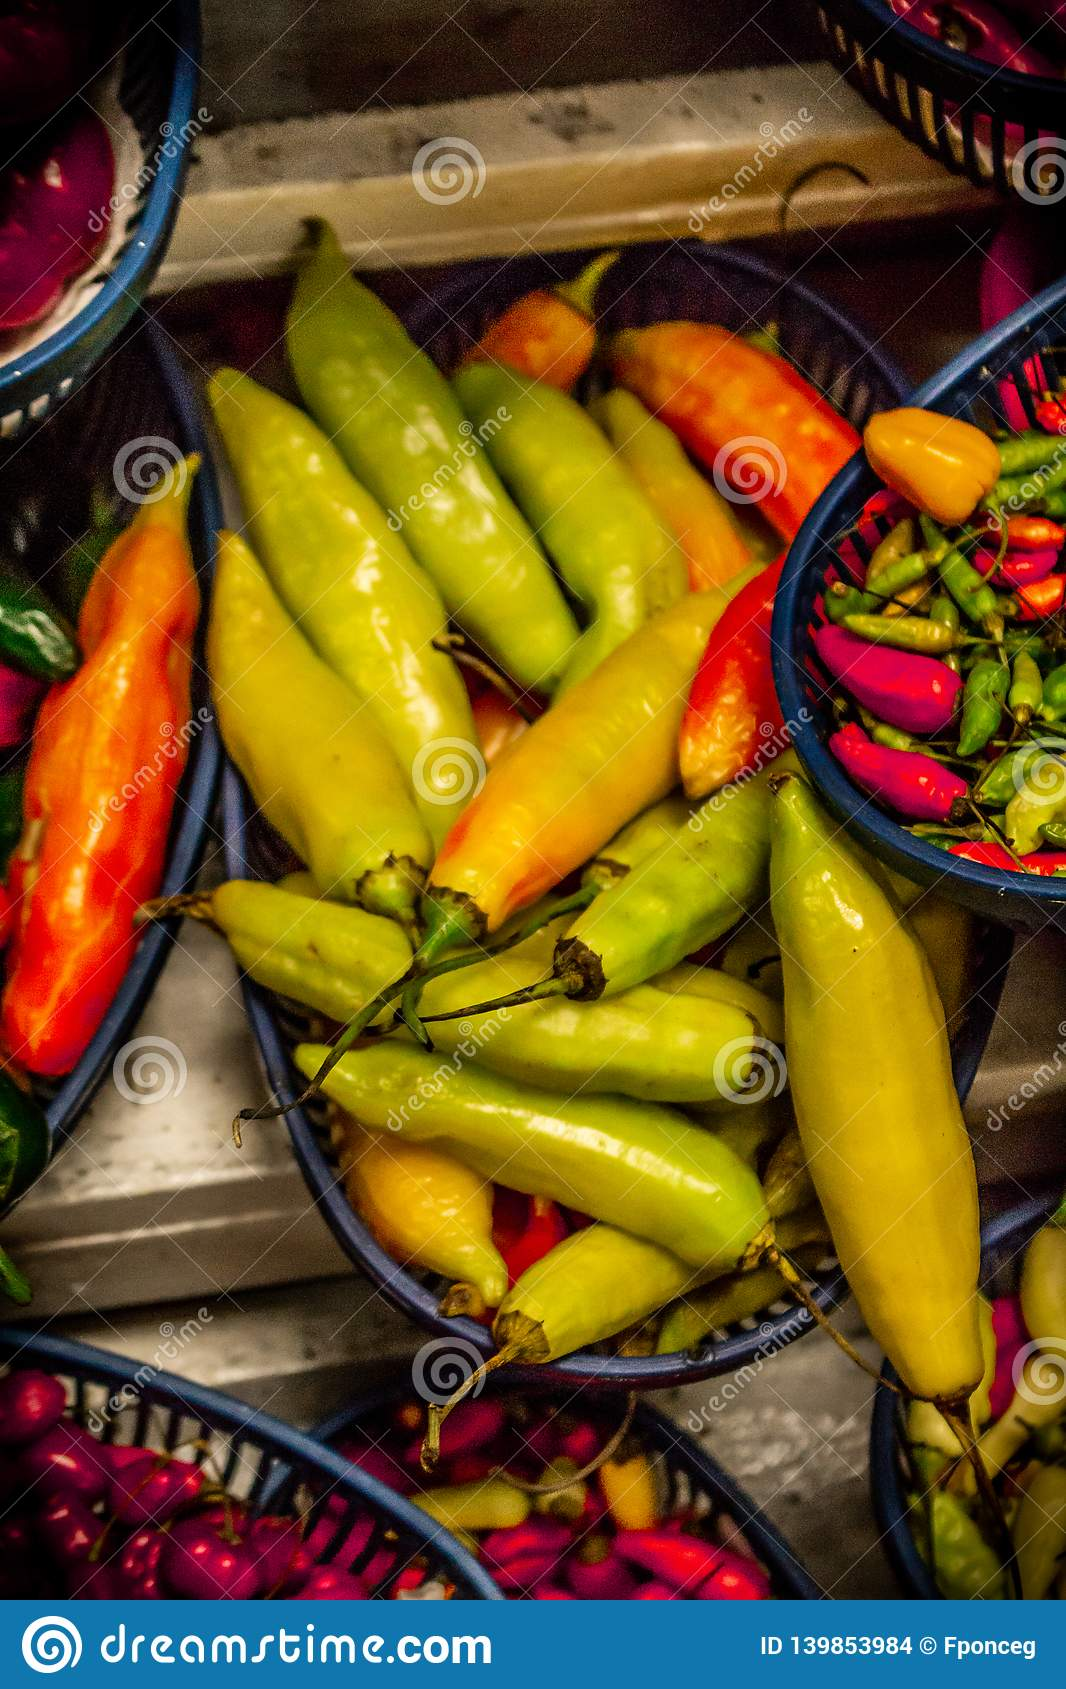 Chili varieties in a market